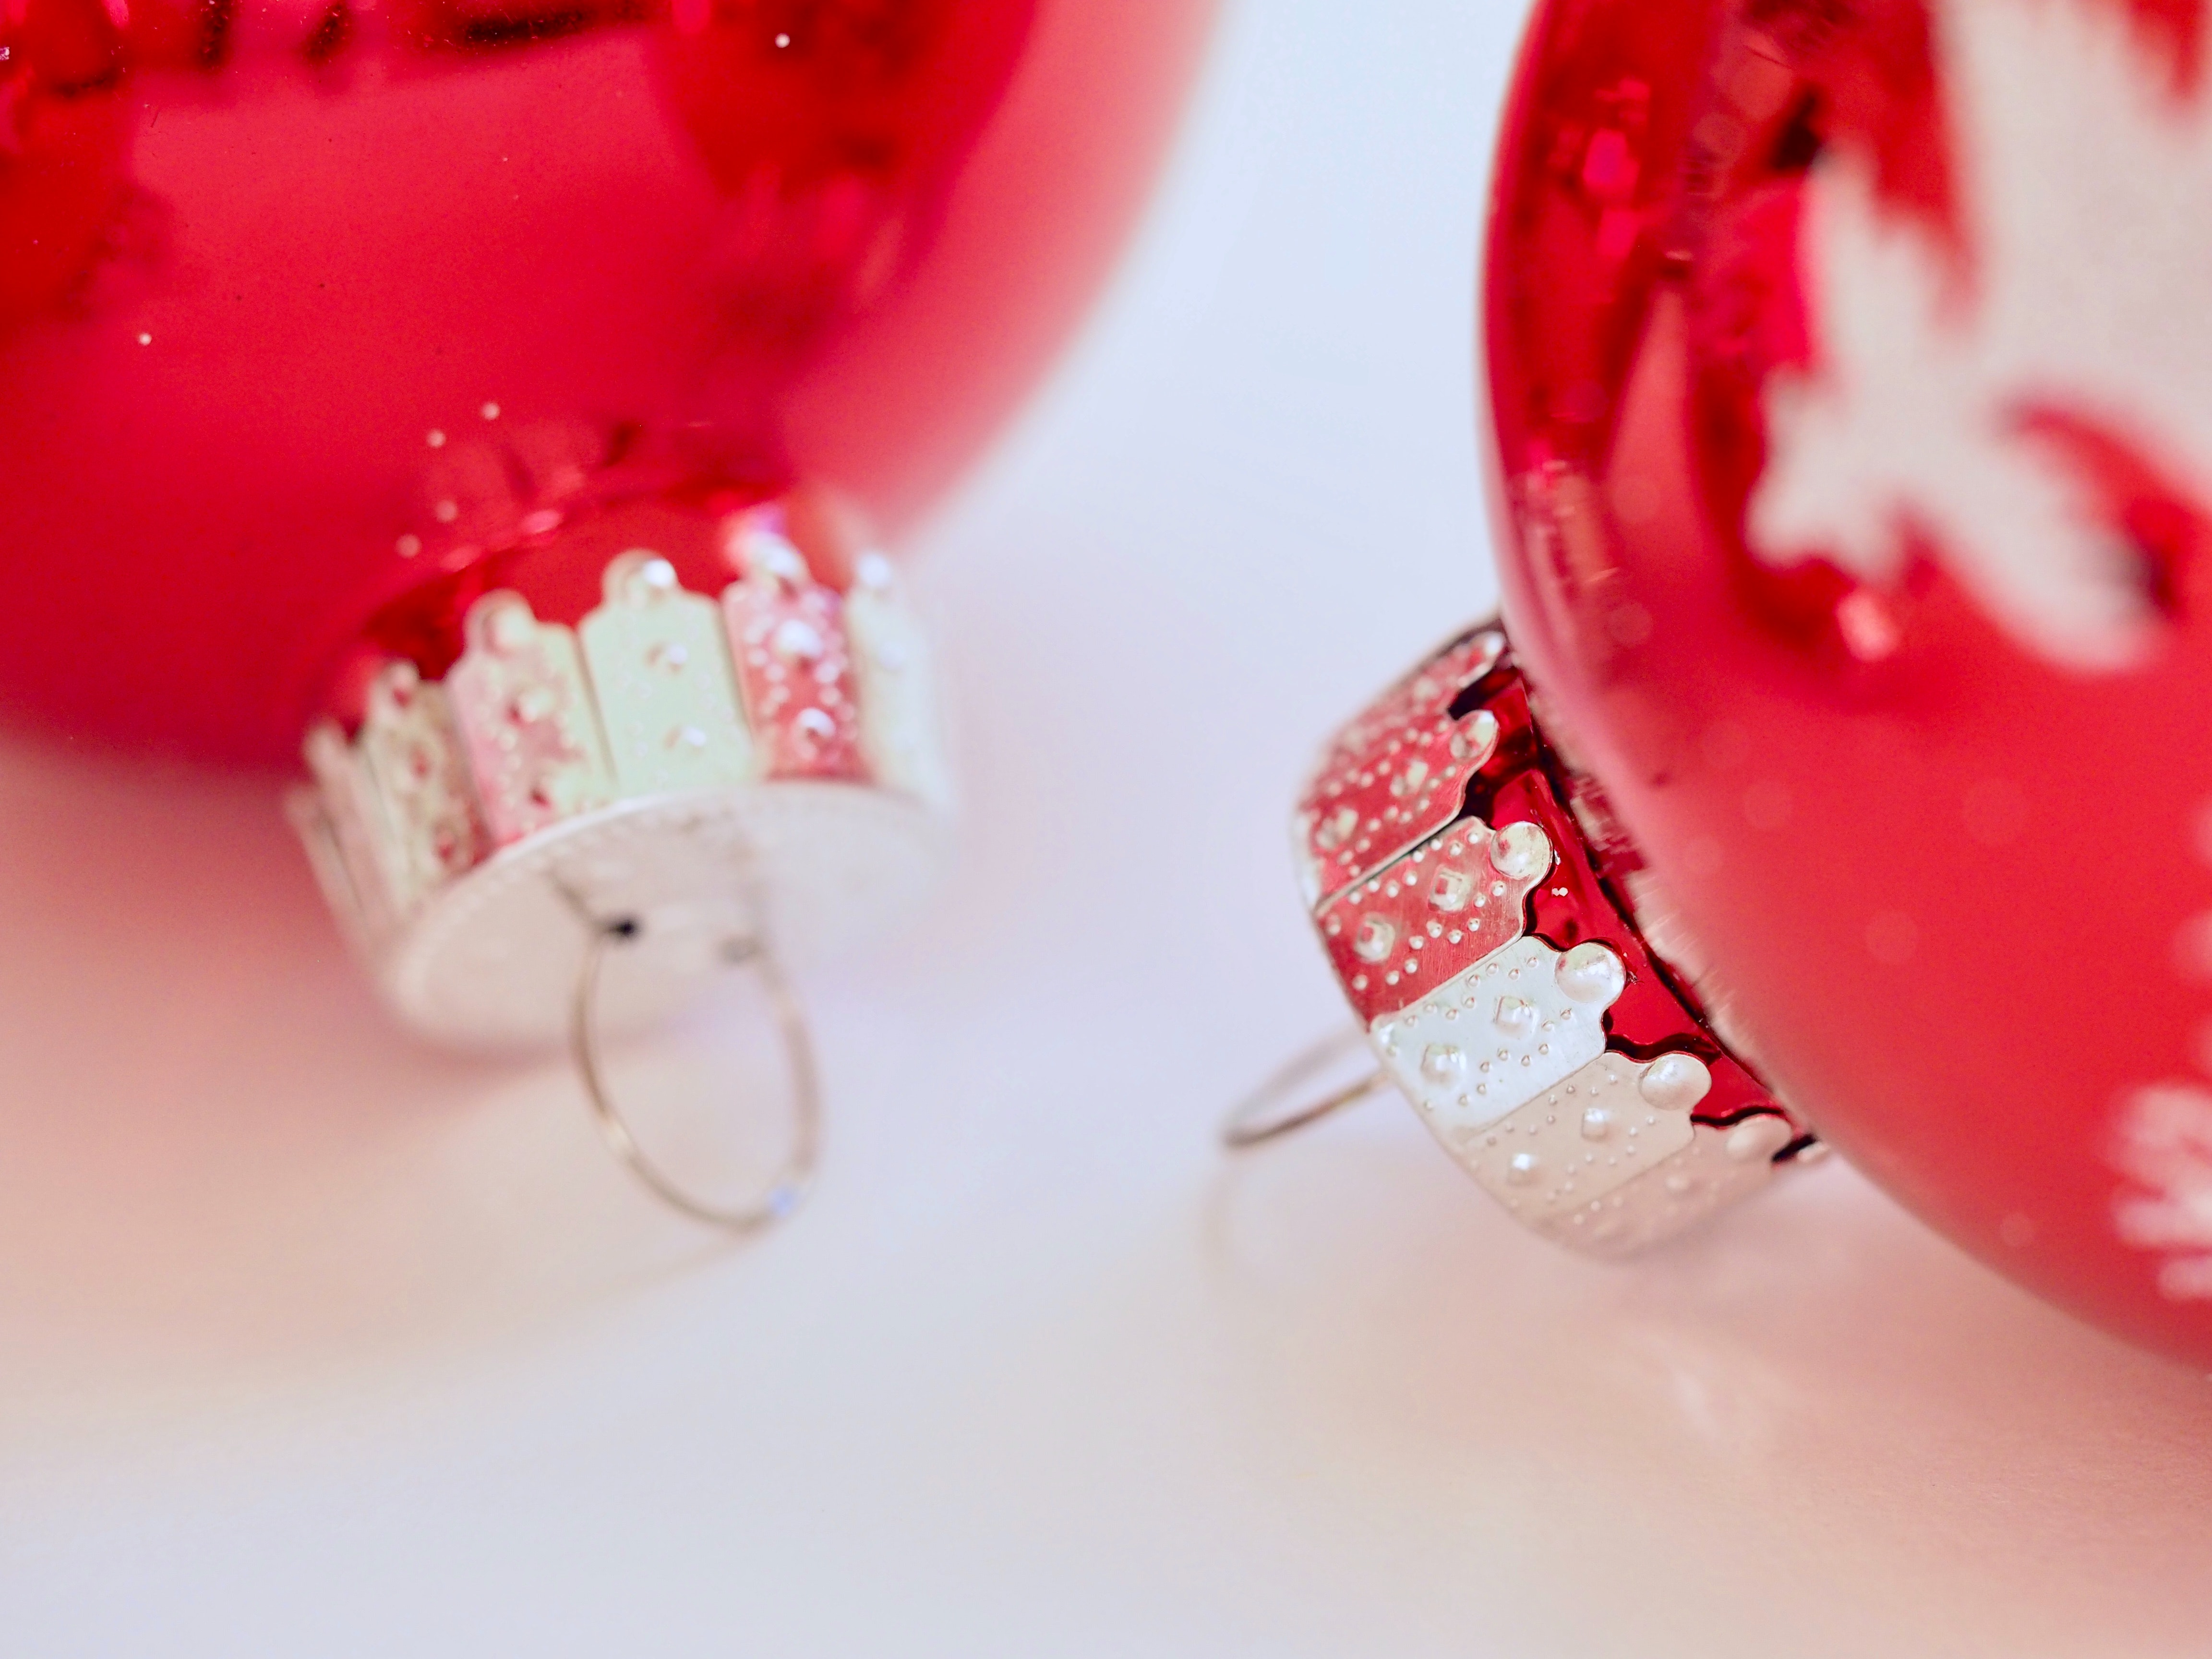 Two Red Christmas Ornaments, Ball, Decorative, Sphere, Simple, HQ Photo